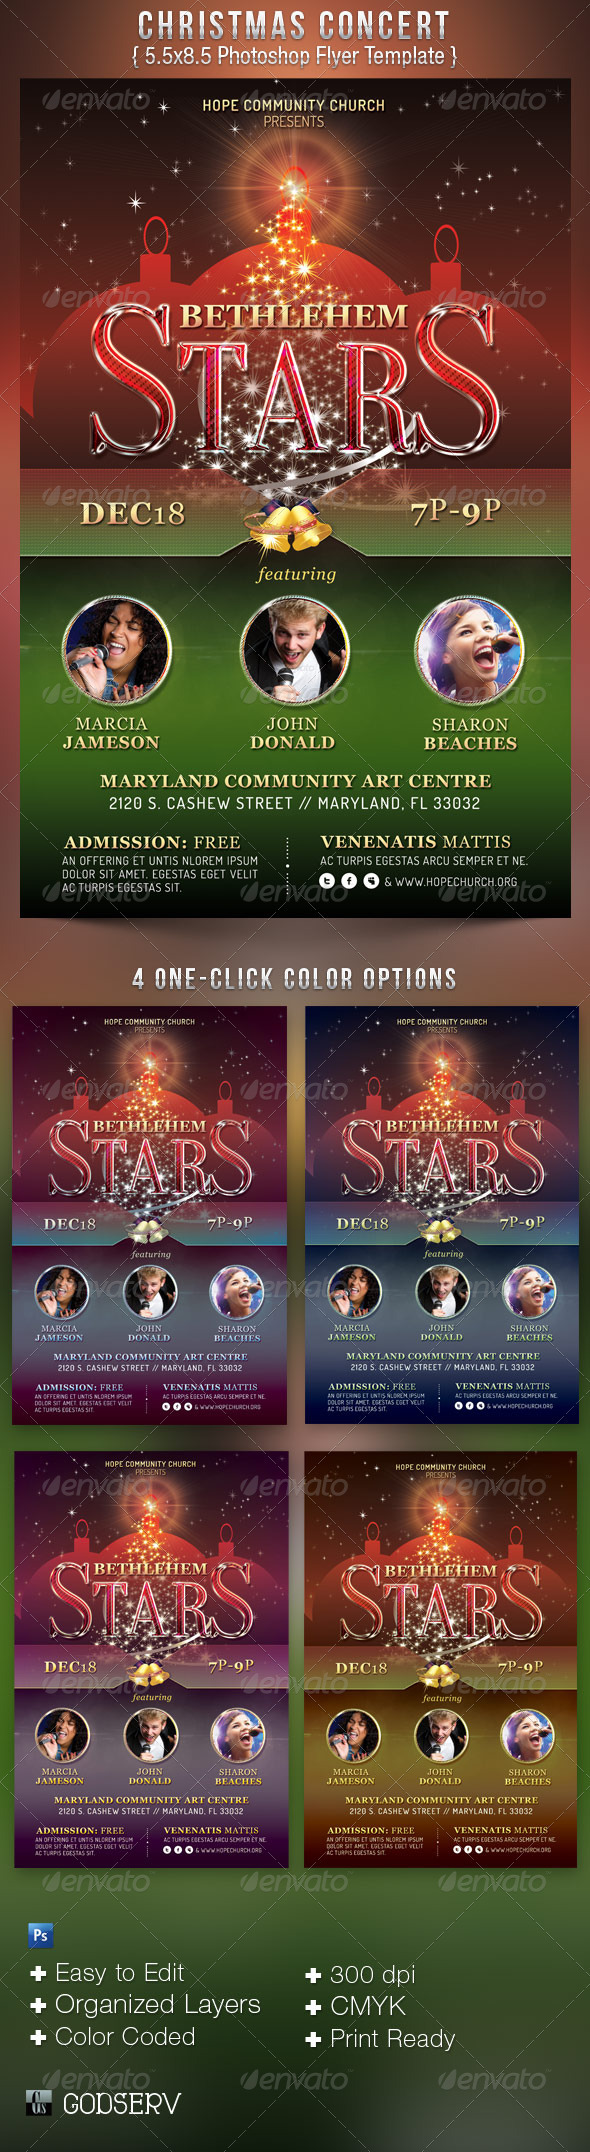 Christmas Concert Flyer Template - Church Flyers